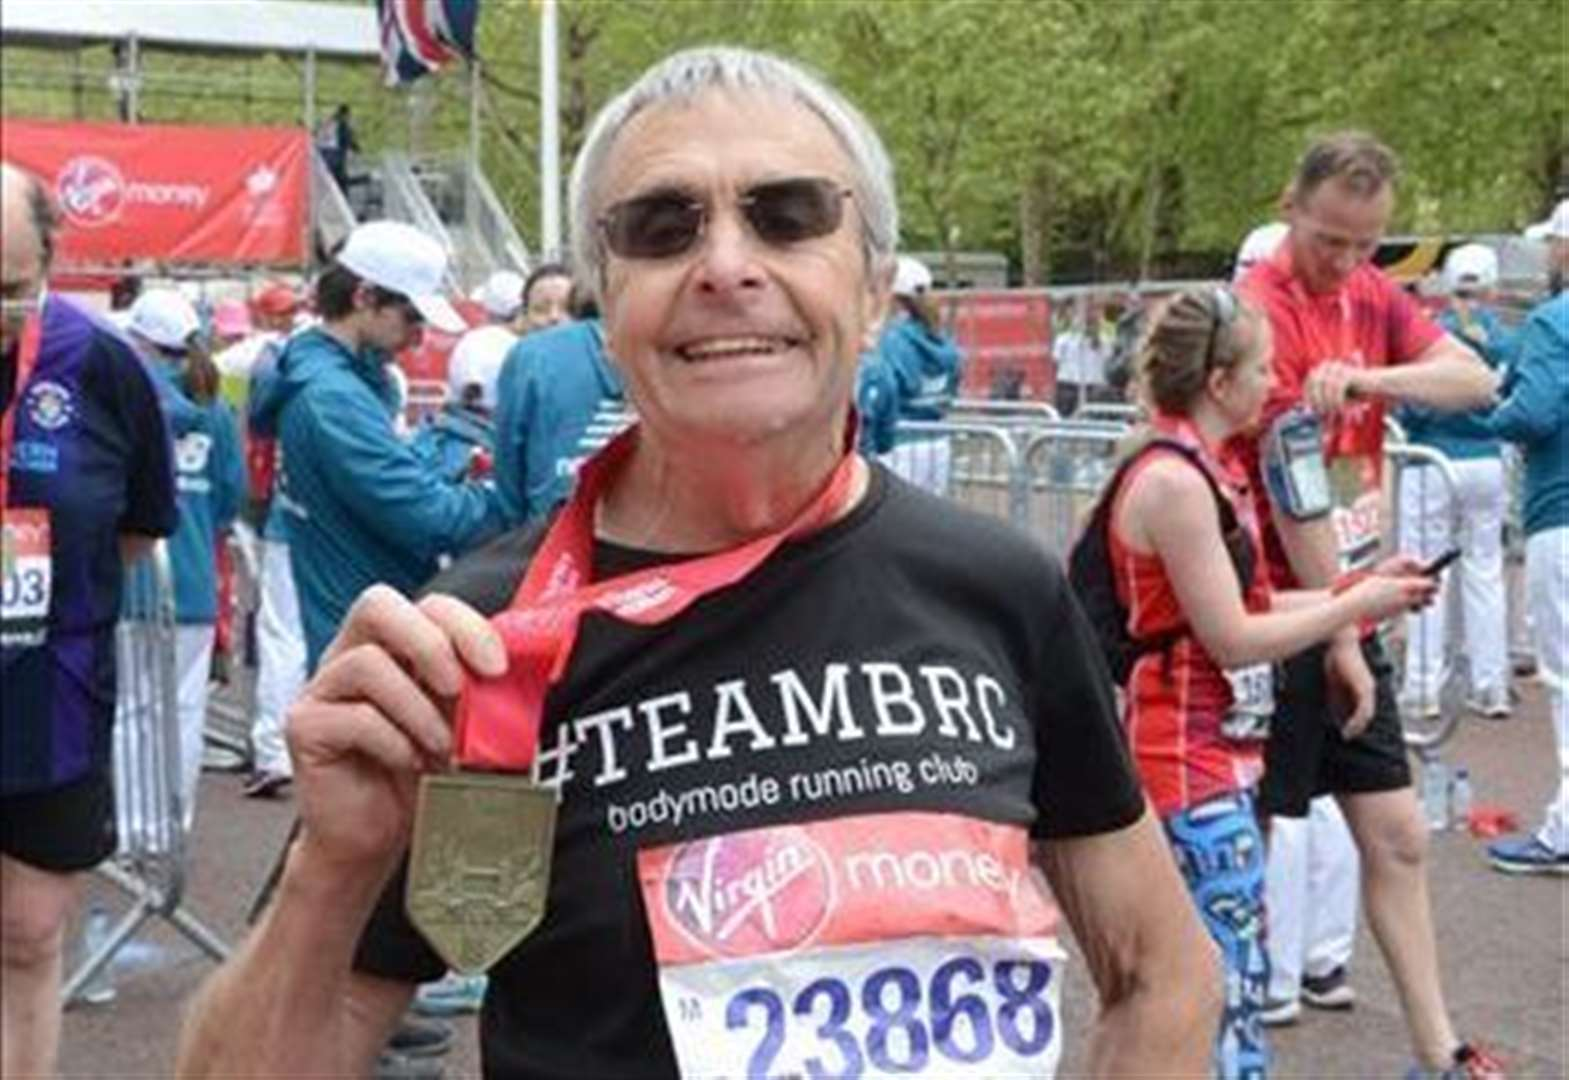 Chatteris Bodymode Running Club's Roger Tolfree, 72, from Mepal completes Virgin London Marathon and an 'inspirational' member